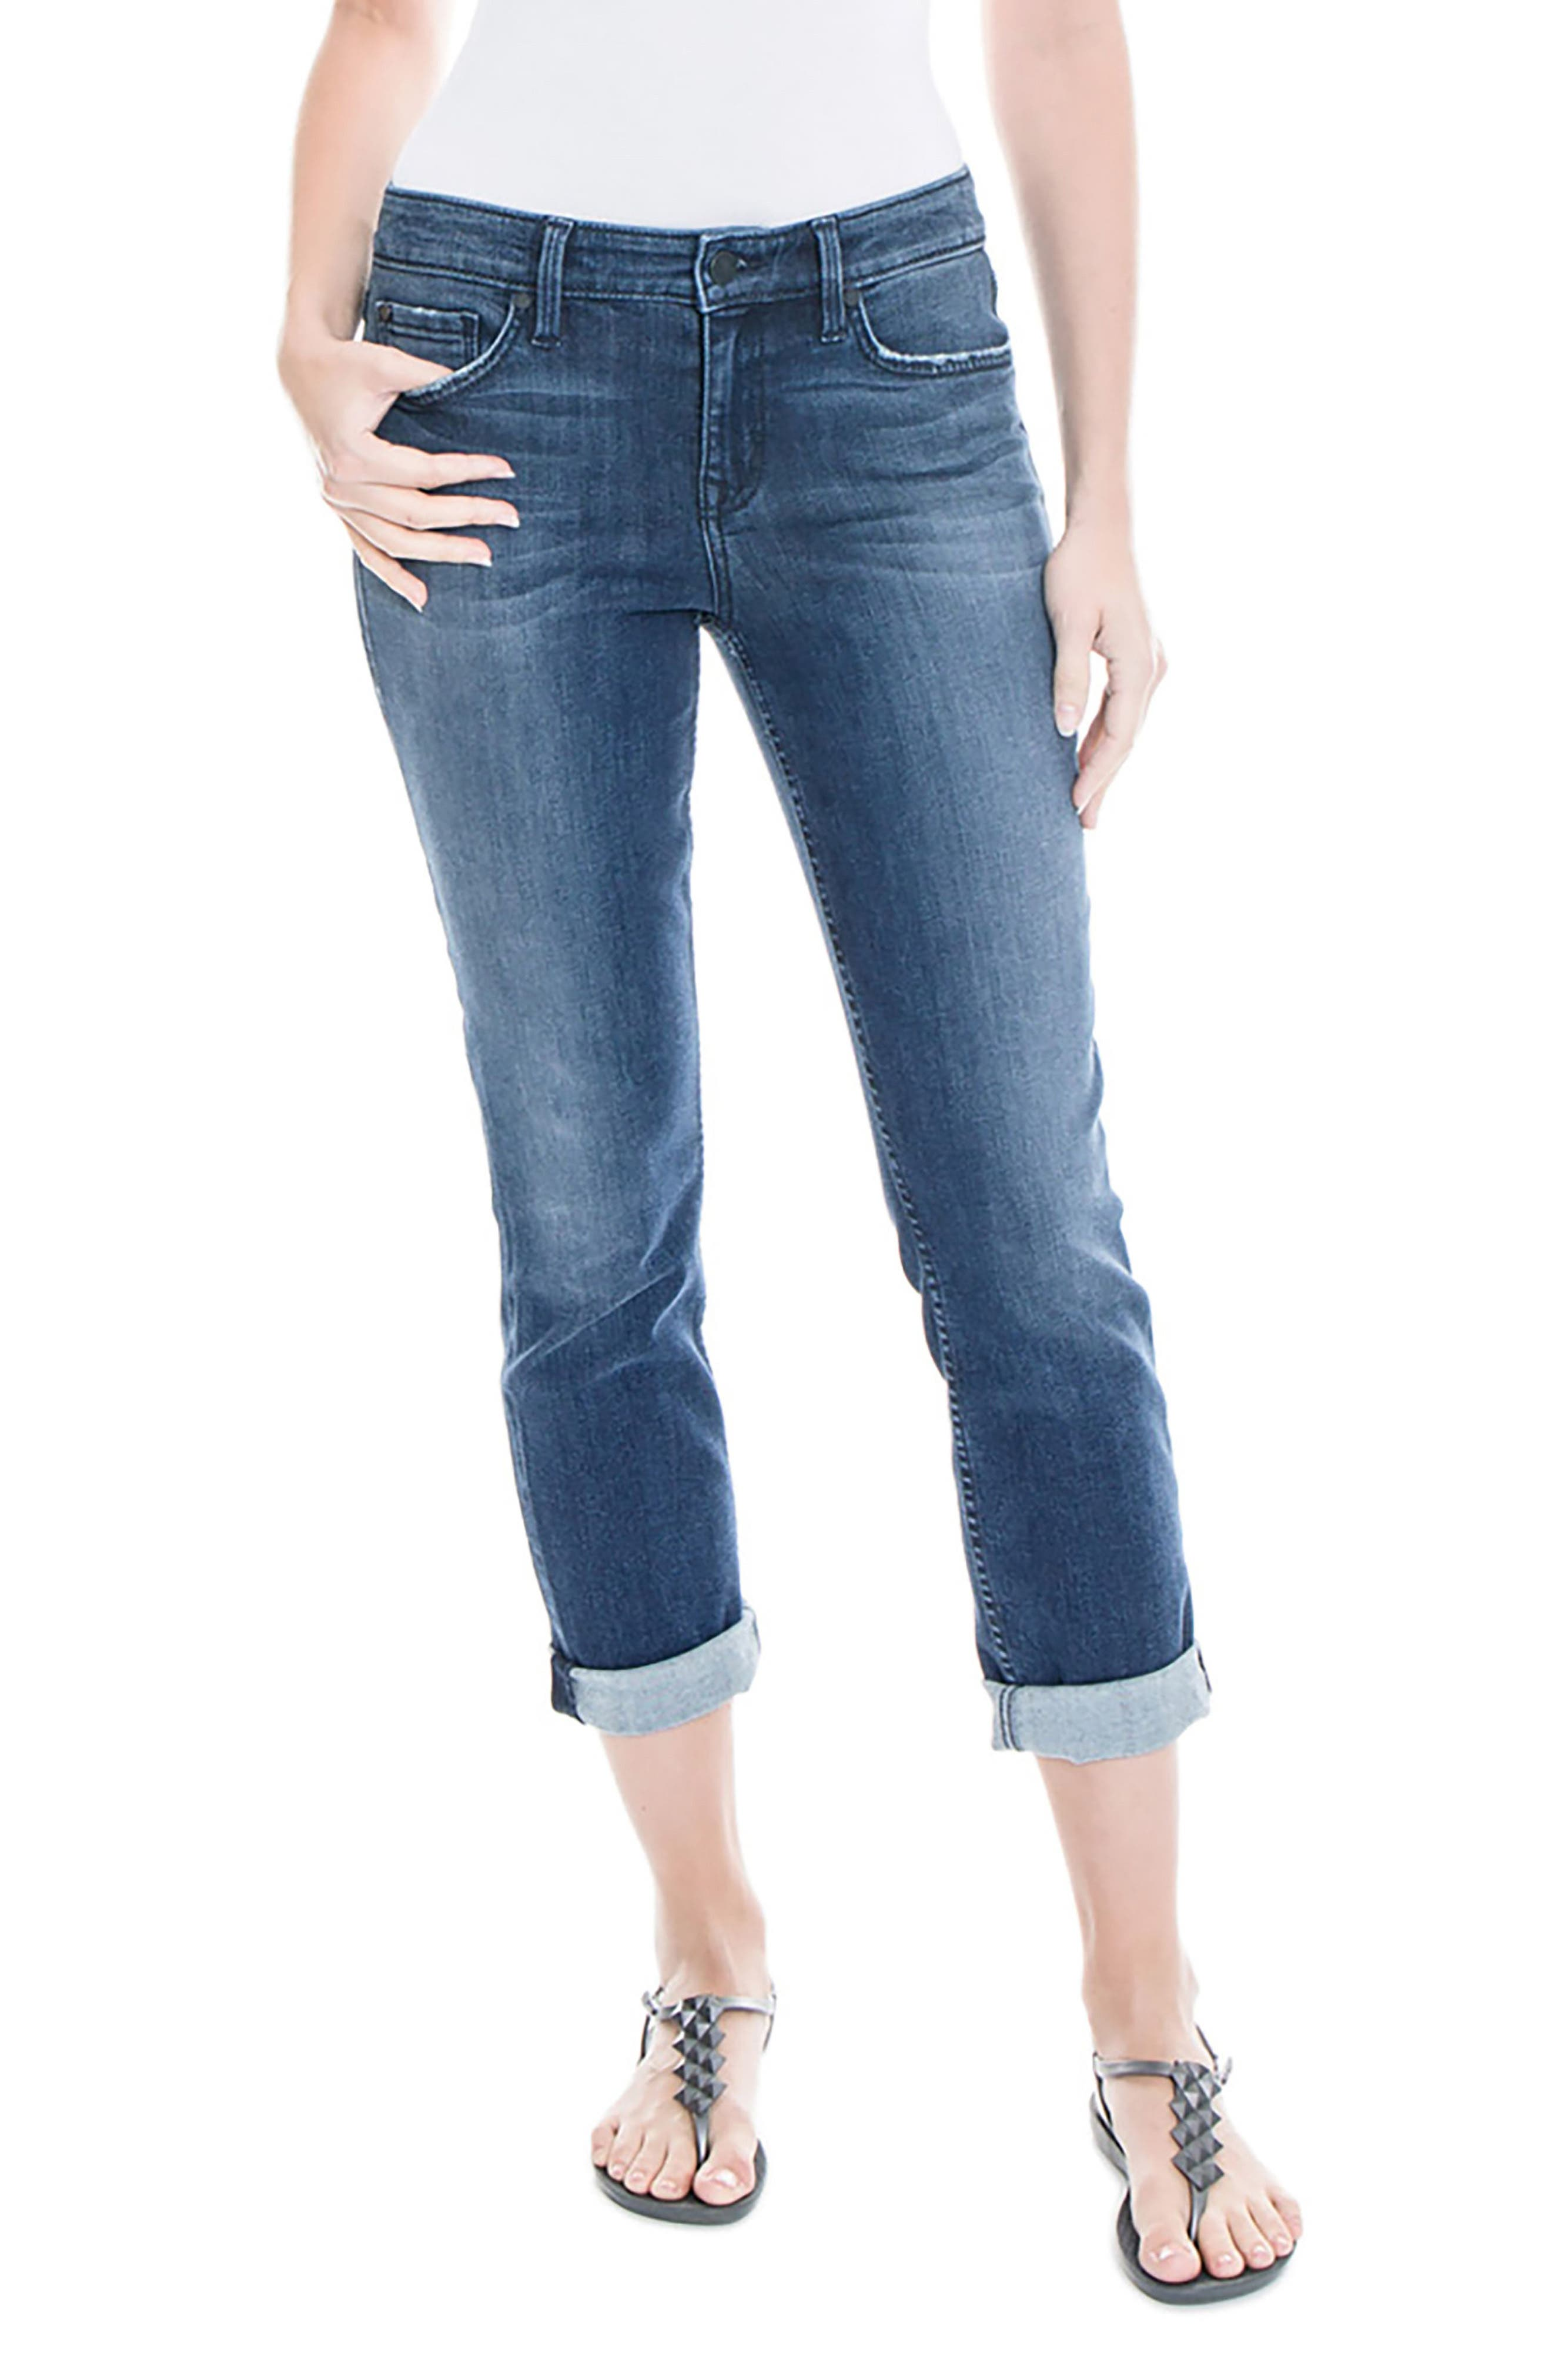 Alternate Image 1 Selected - Level 99 Lily Stretch Distressed Crop Cuff Jeans